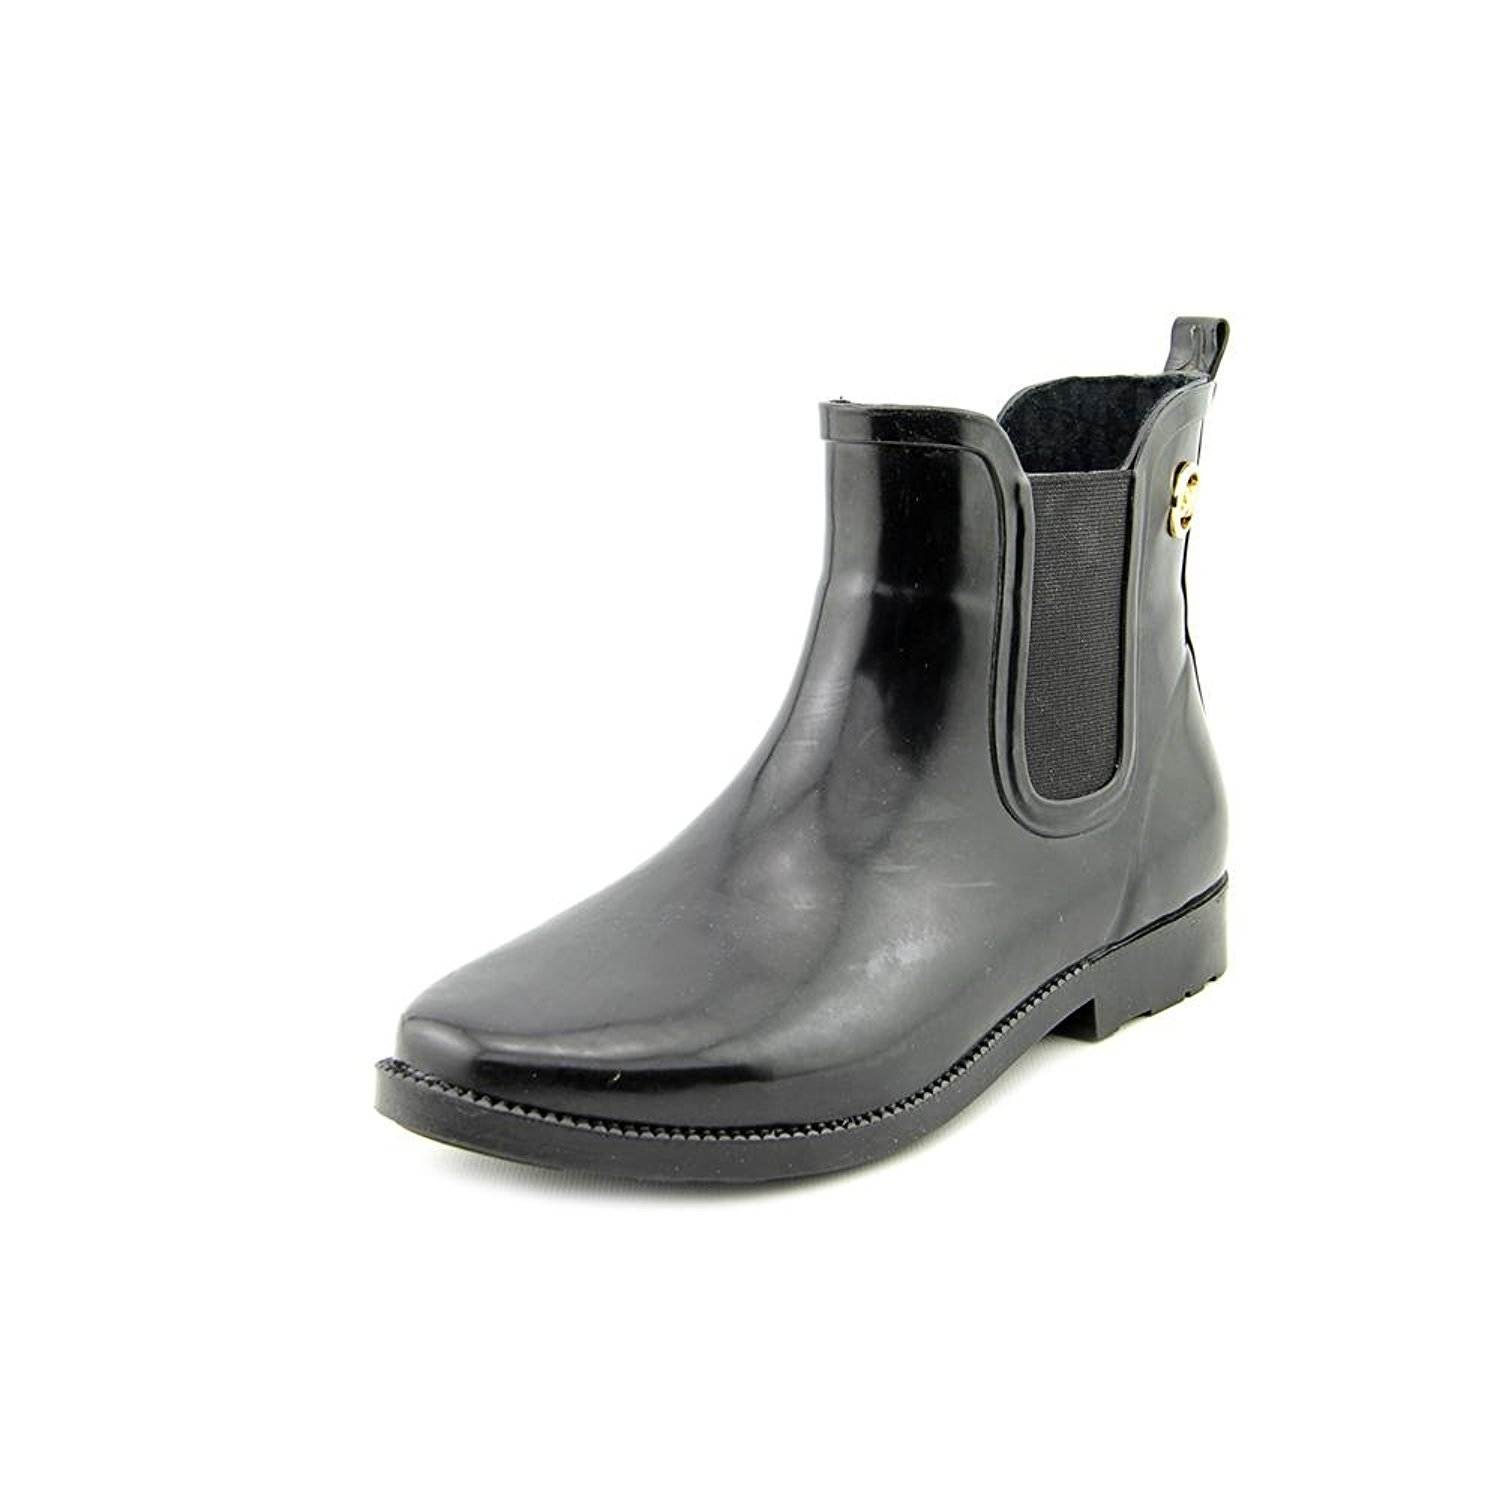 Michael Kors Womens CHARM RIDING Closed Toe Mid-Calf Rainboots, Blk, Size 9.0 tx